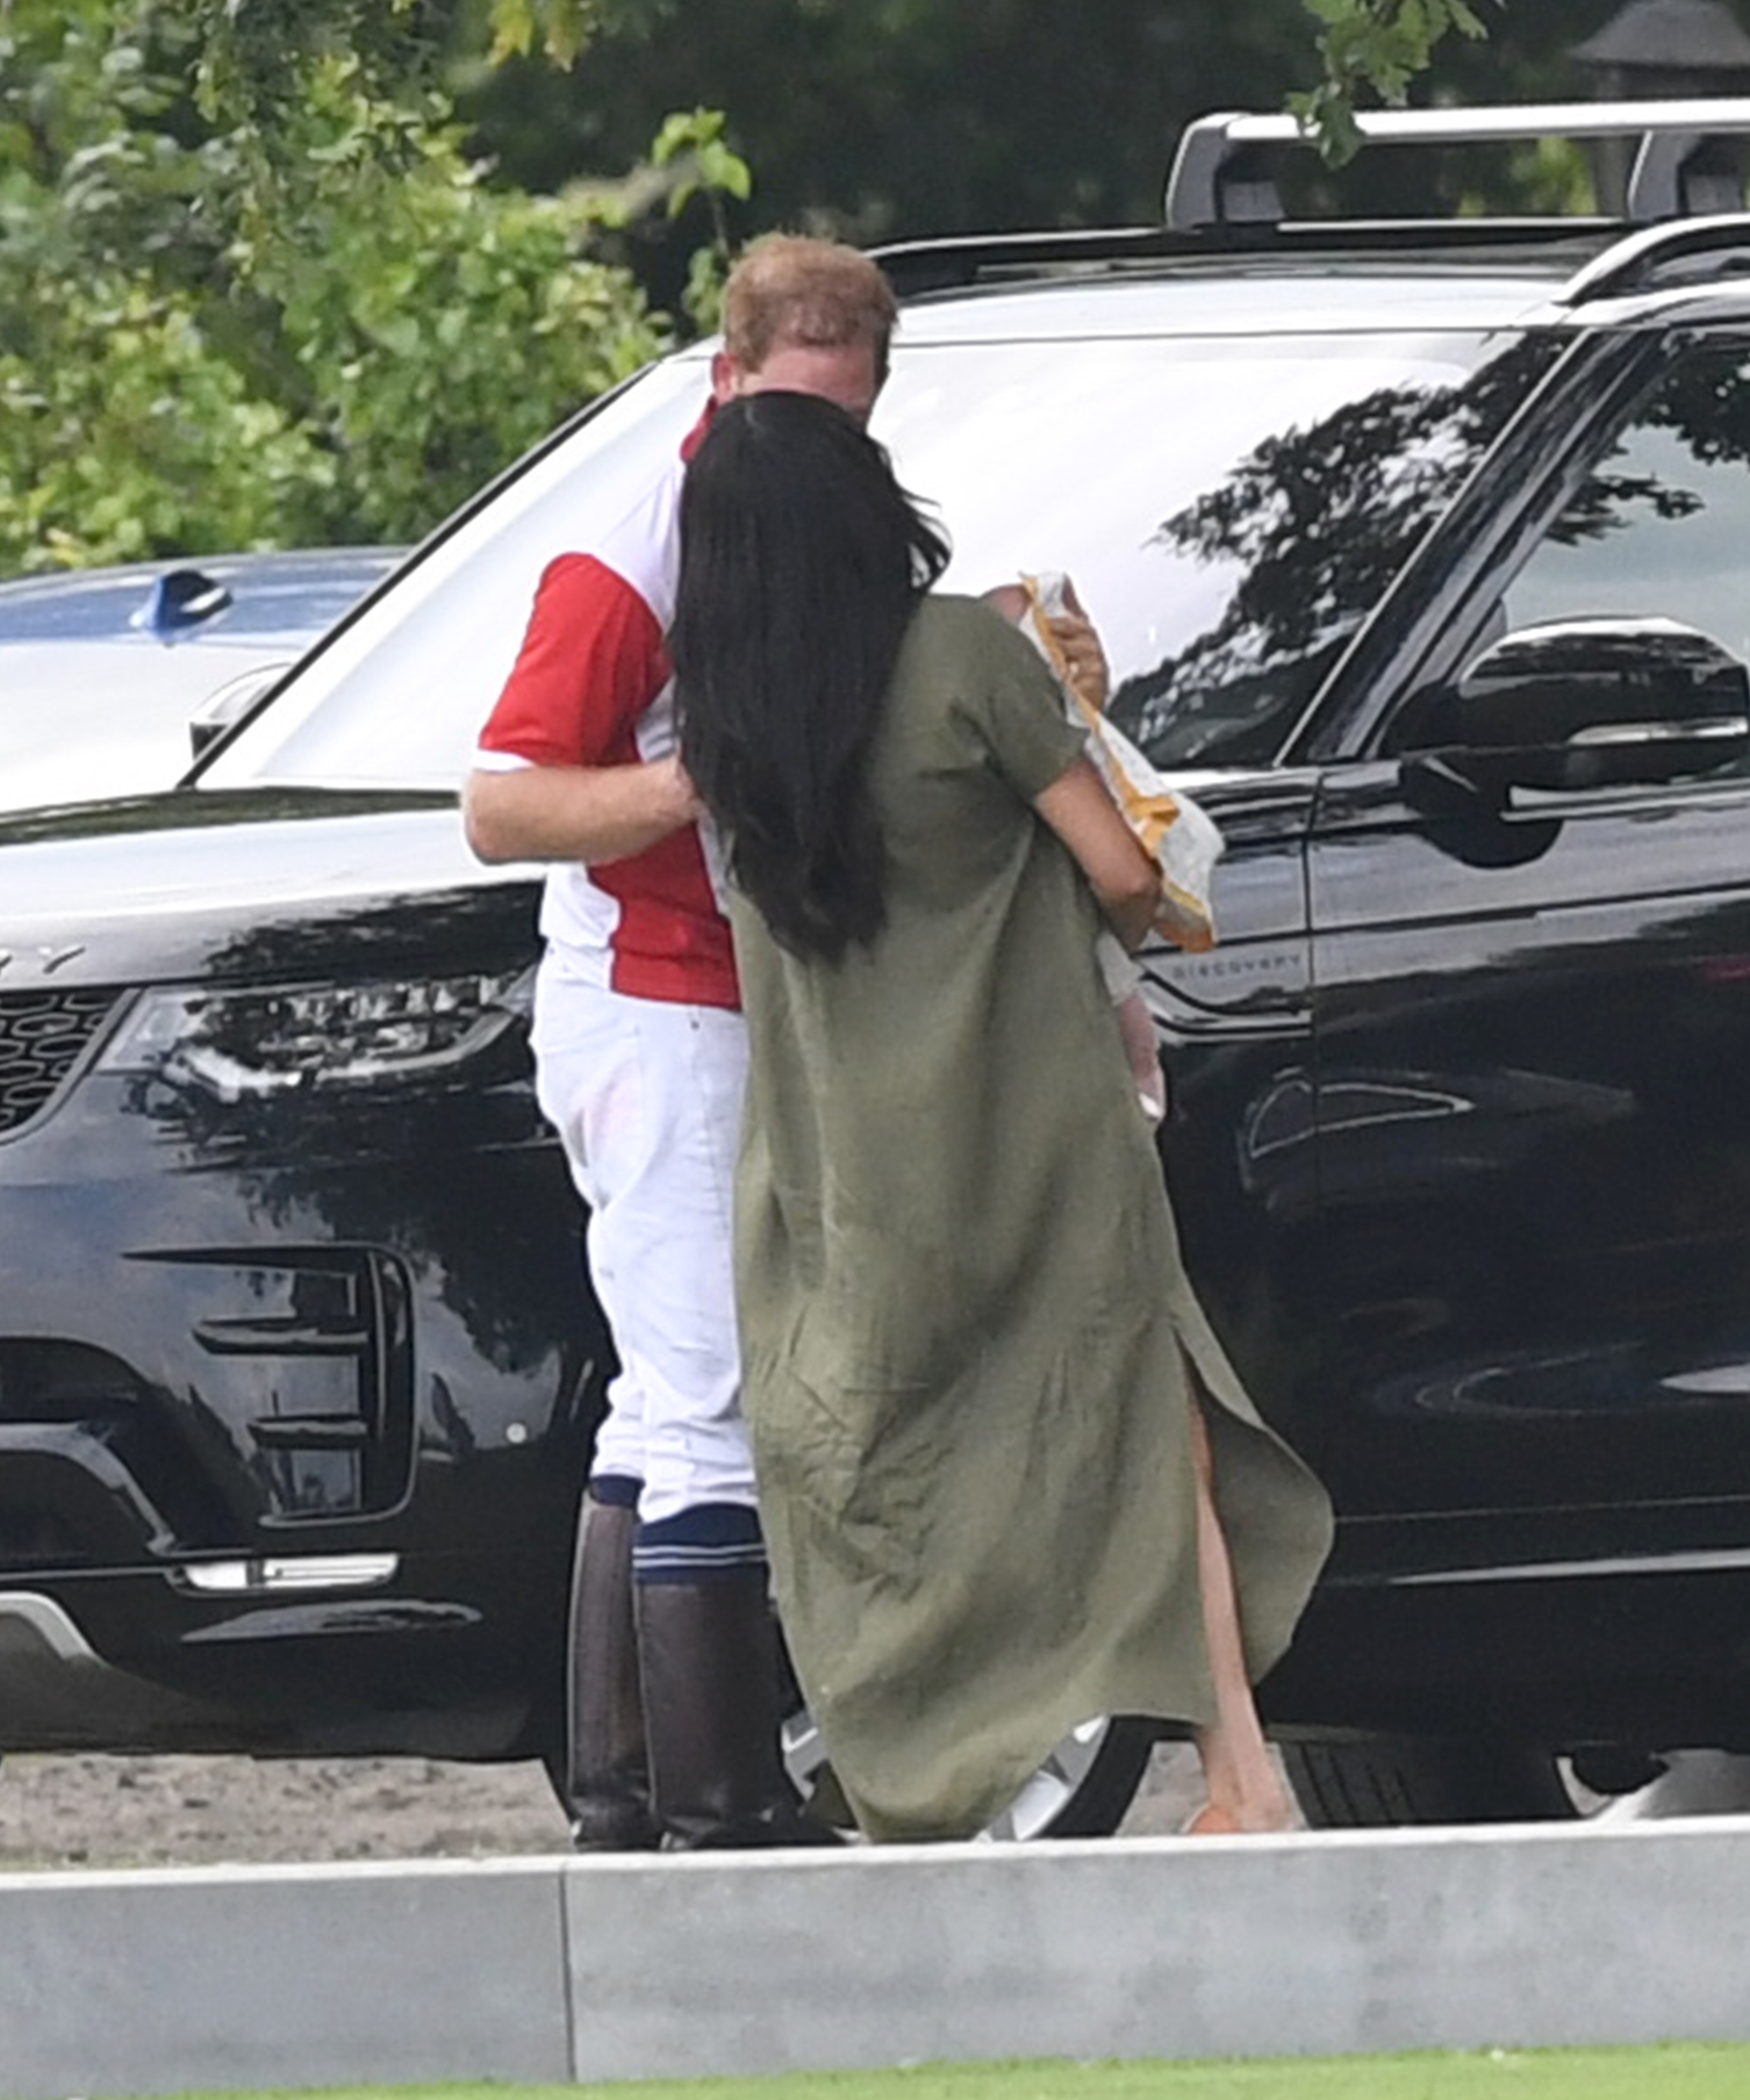 Prince Harry and Meghan Markle share affectionate moment with baby Archie after King Power Charity Polo Match. Pictured: Prince William,Duke of Sussex,Meghan Duchess of Sussex,Archie Harrison Mountbatten-Windsor Ref: SPL5103070 100719 NON-EXCLUSIVE Picture by: SplashNews.com Splash News and Pictures Los Angeles: 310-821-2666 New York: 212-619-2666 London: 0207 644 7656 Milan: 02 4399 8577 photodesk@splashnews.com World Rights